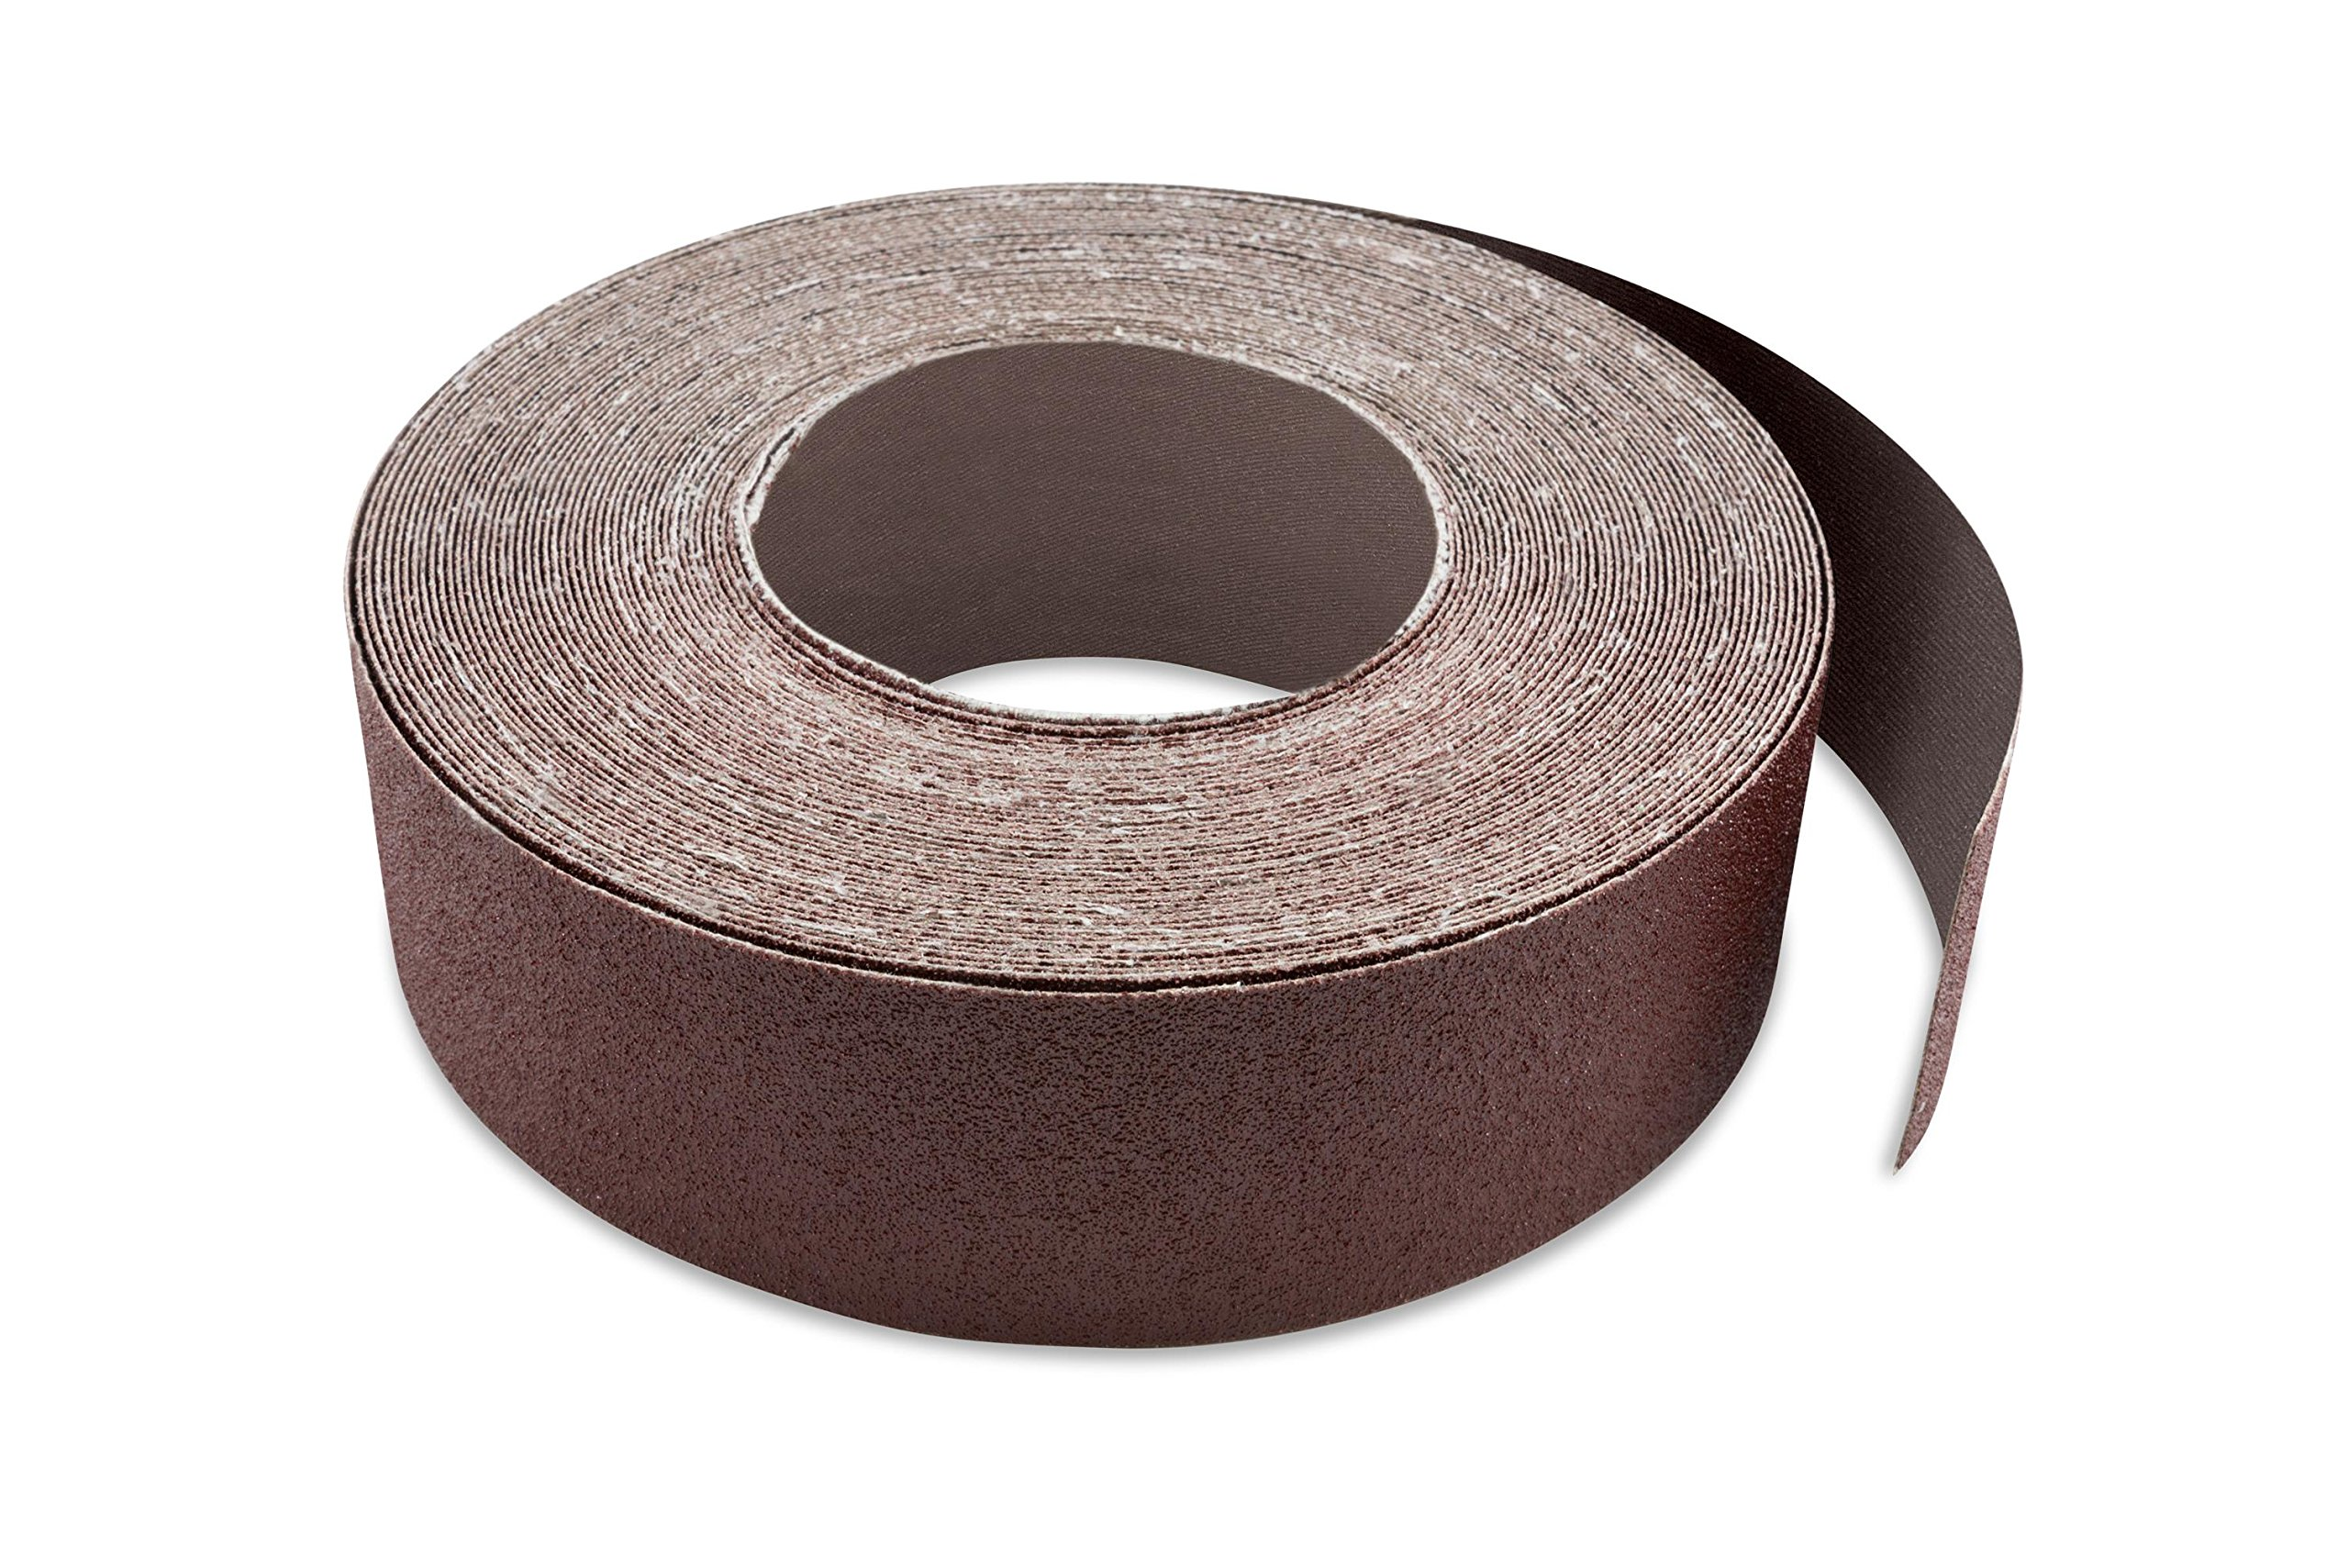 3 Inch X 70 FT 80 Grit Woodworking Drum Sander Strip Roll, Cut to Length